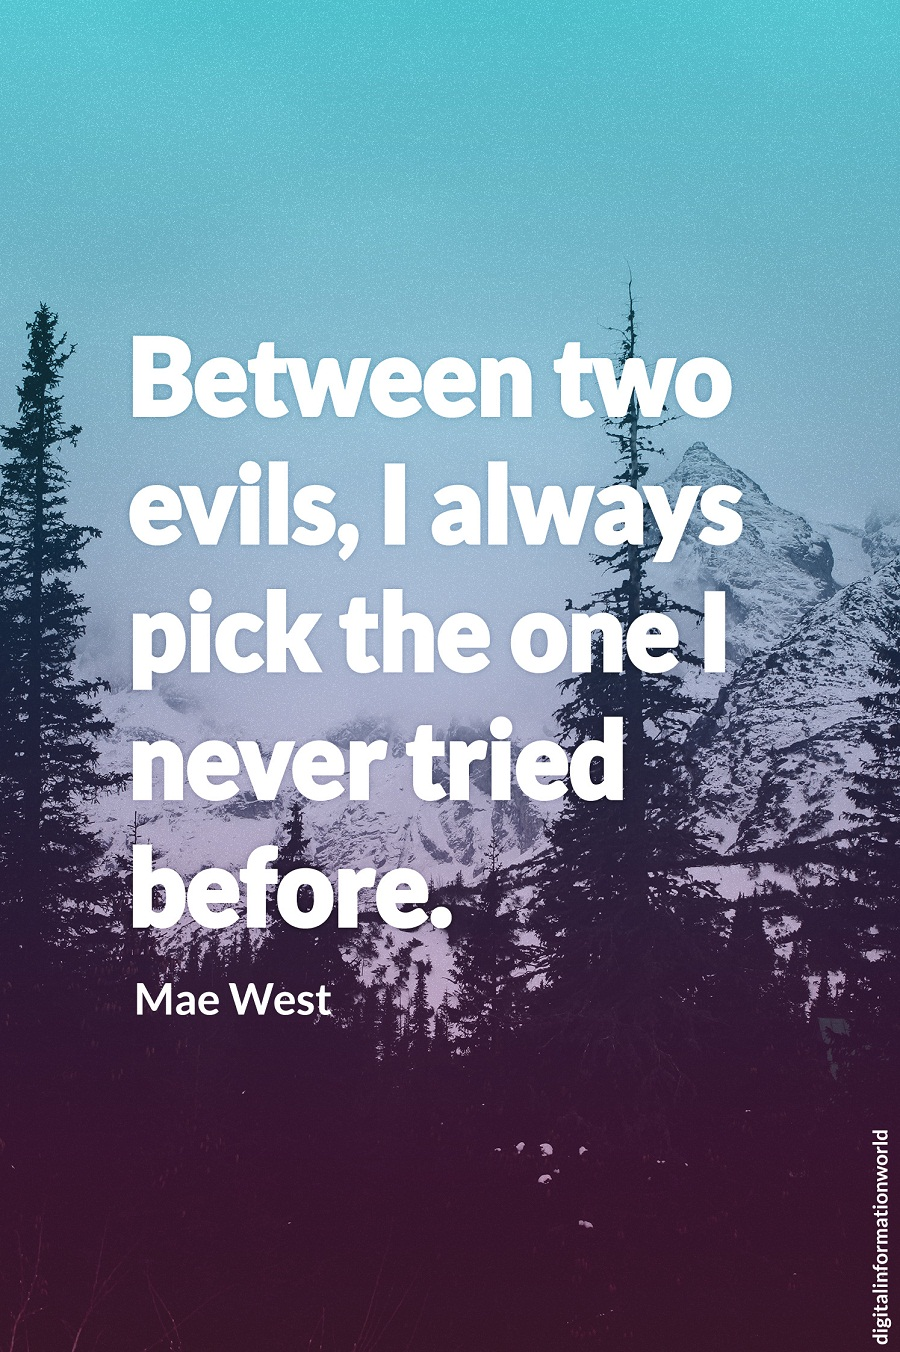 Between two evils I always pick the one I never tried before. Mae West